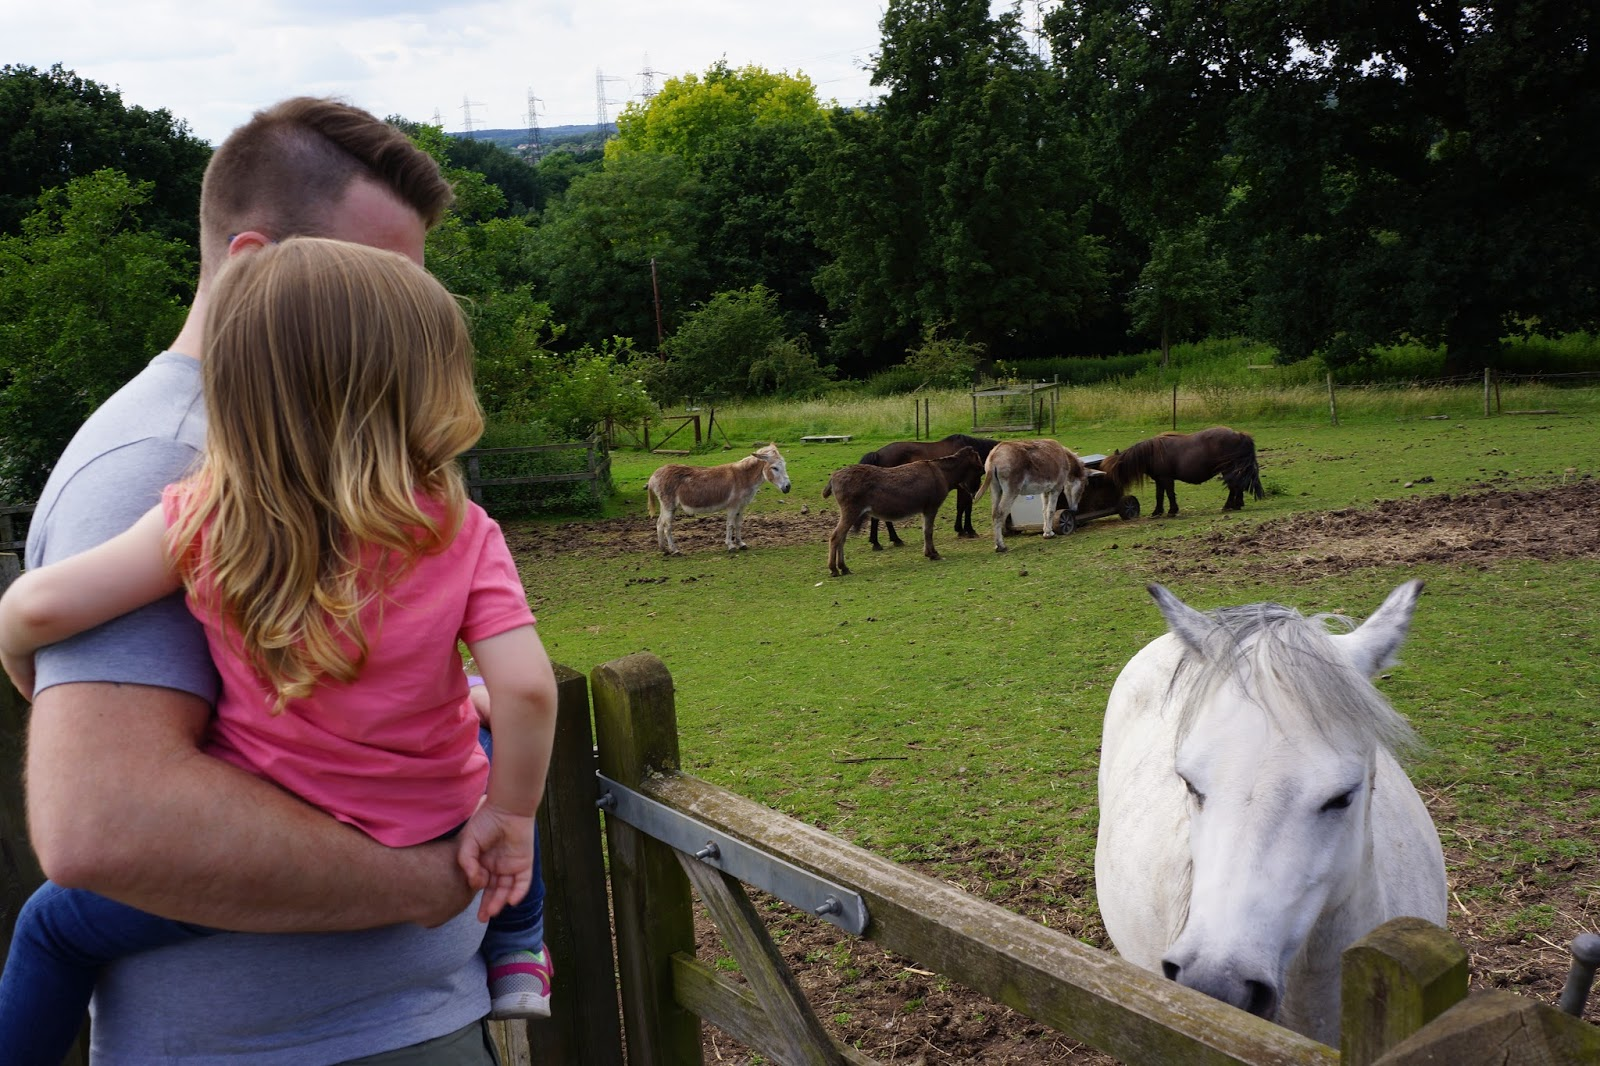 dad and daughter looking at a white horse